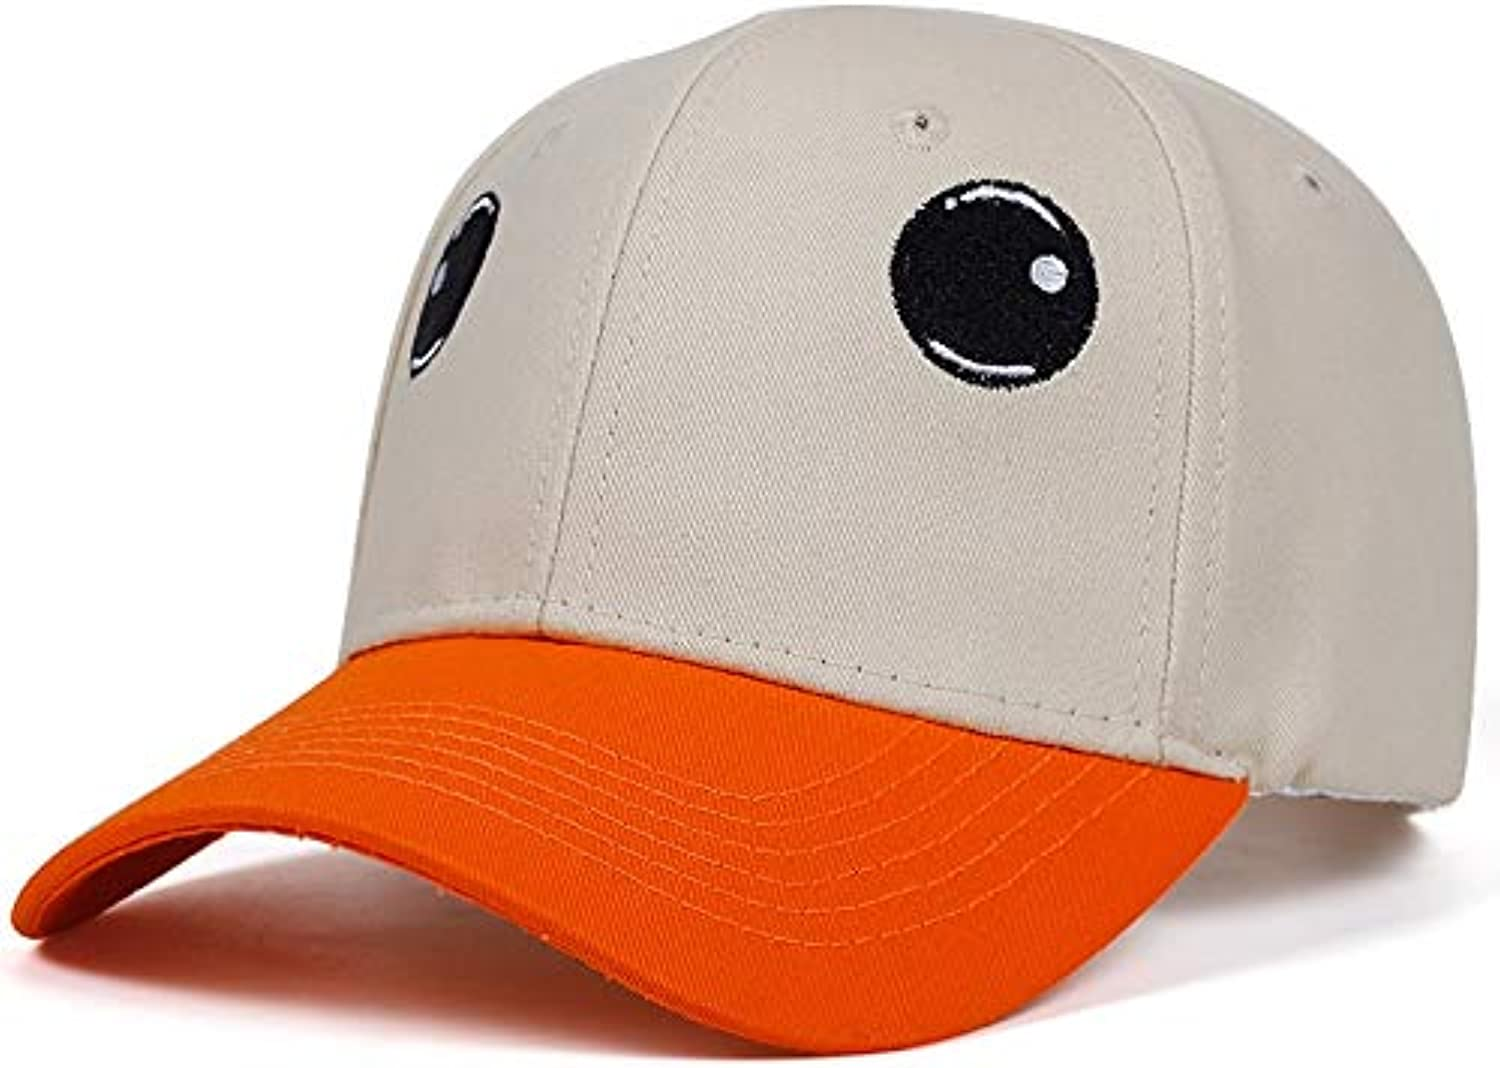 Chlally Unisex Cute Duck Embroidery Adjustable Hat Men Handsome Cotton Baseball Cap Women Fashion Hip hop caps